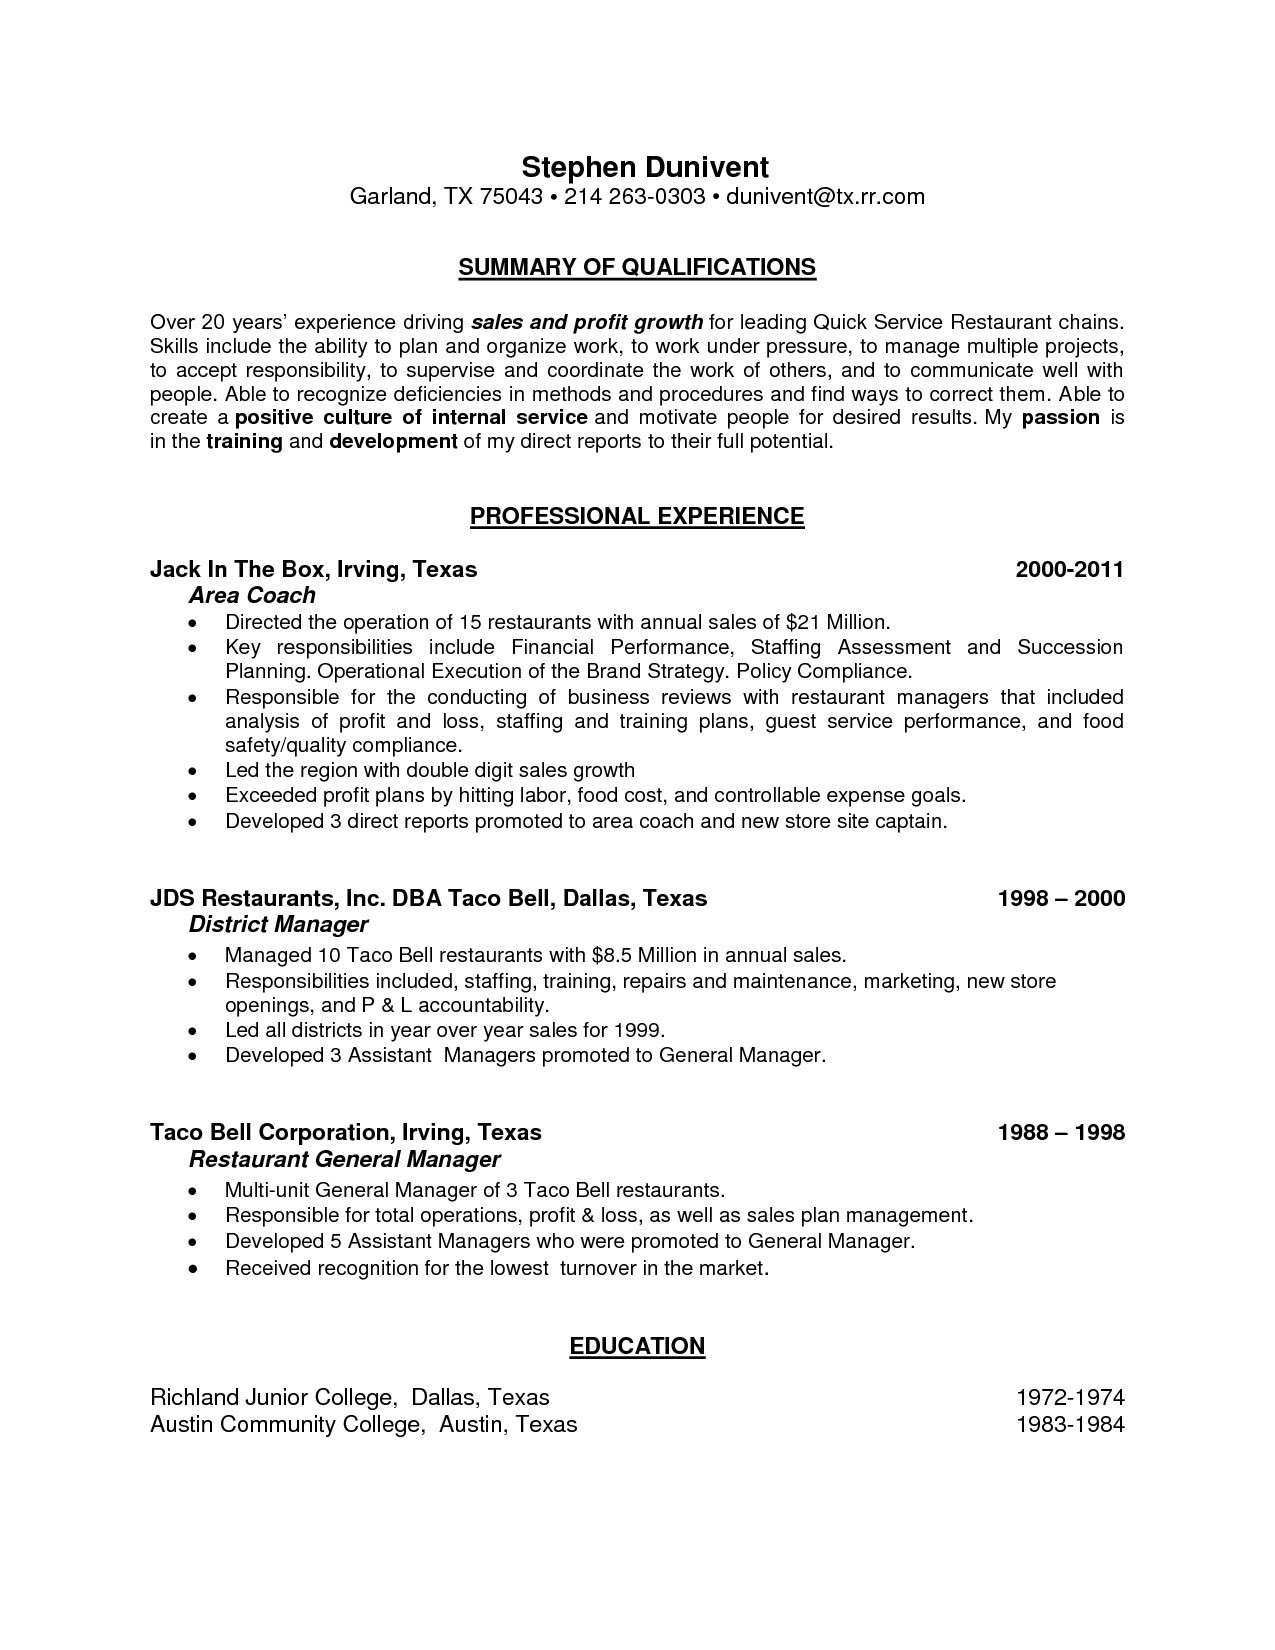 Assistant Manager Resume Template - Skills Summary Resume Sample Fresh Resume Samples Skills Fresh